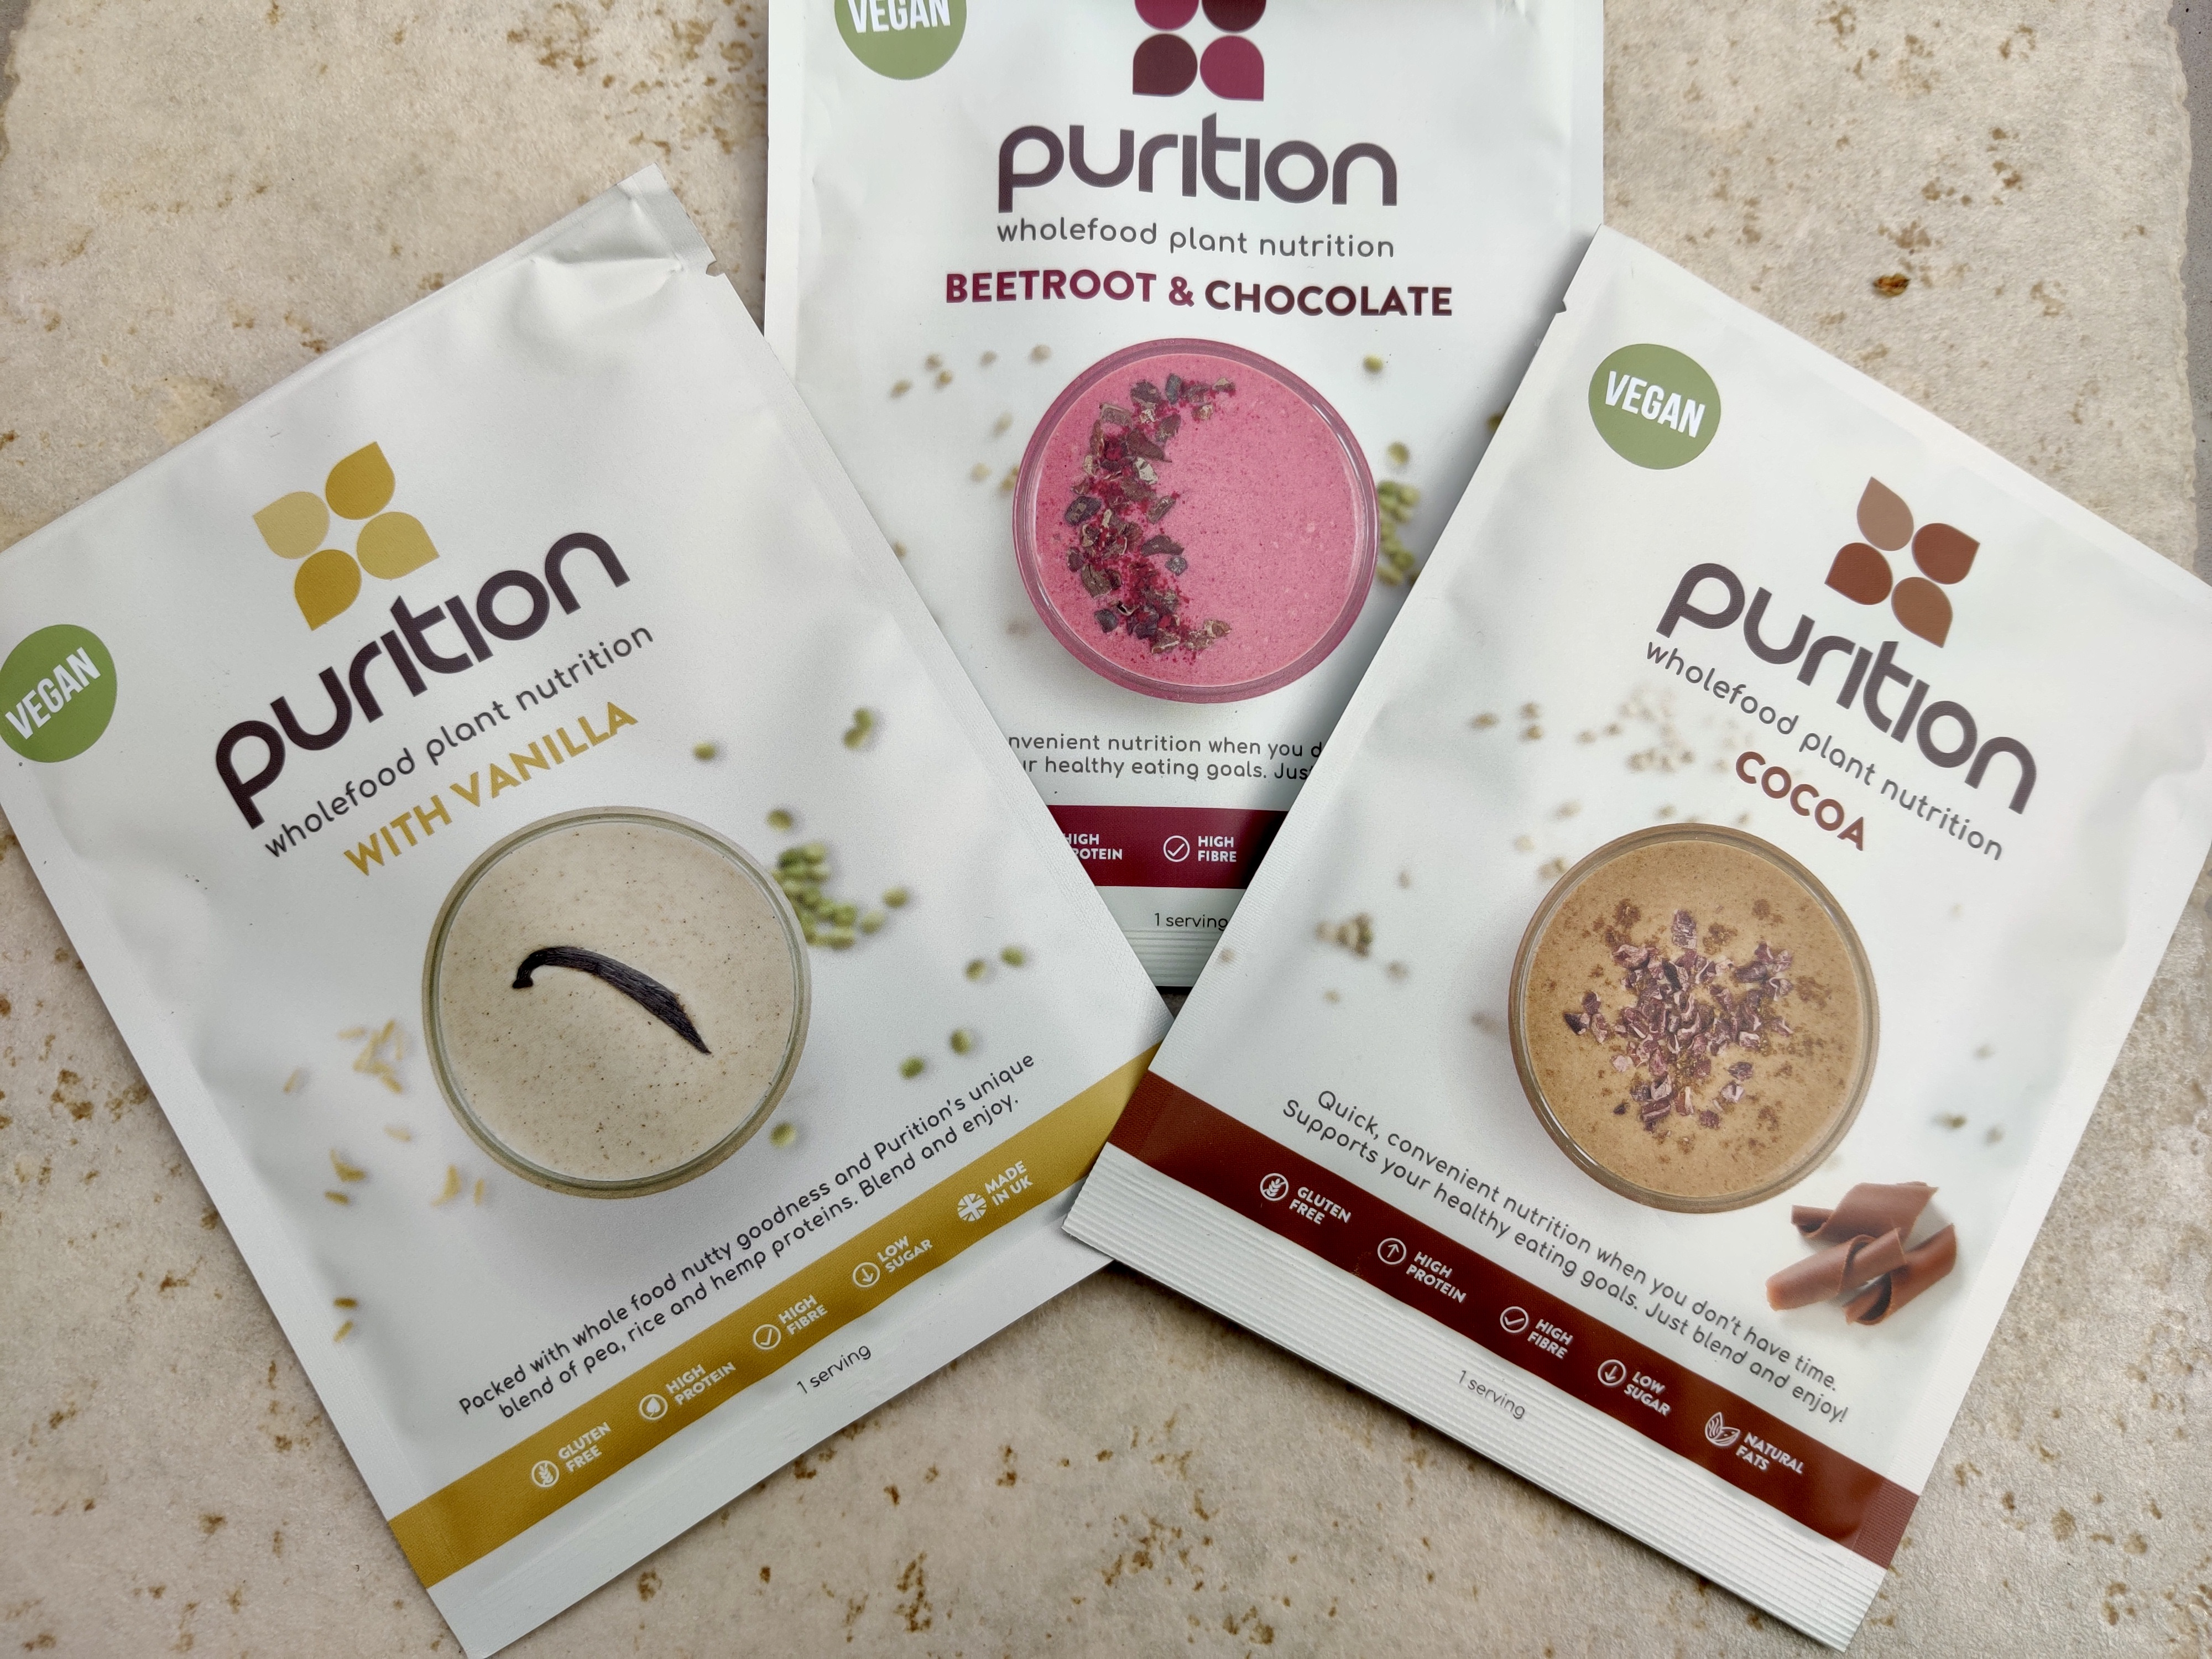 All Purition blends are gluten-free and perfect for breakfast.